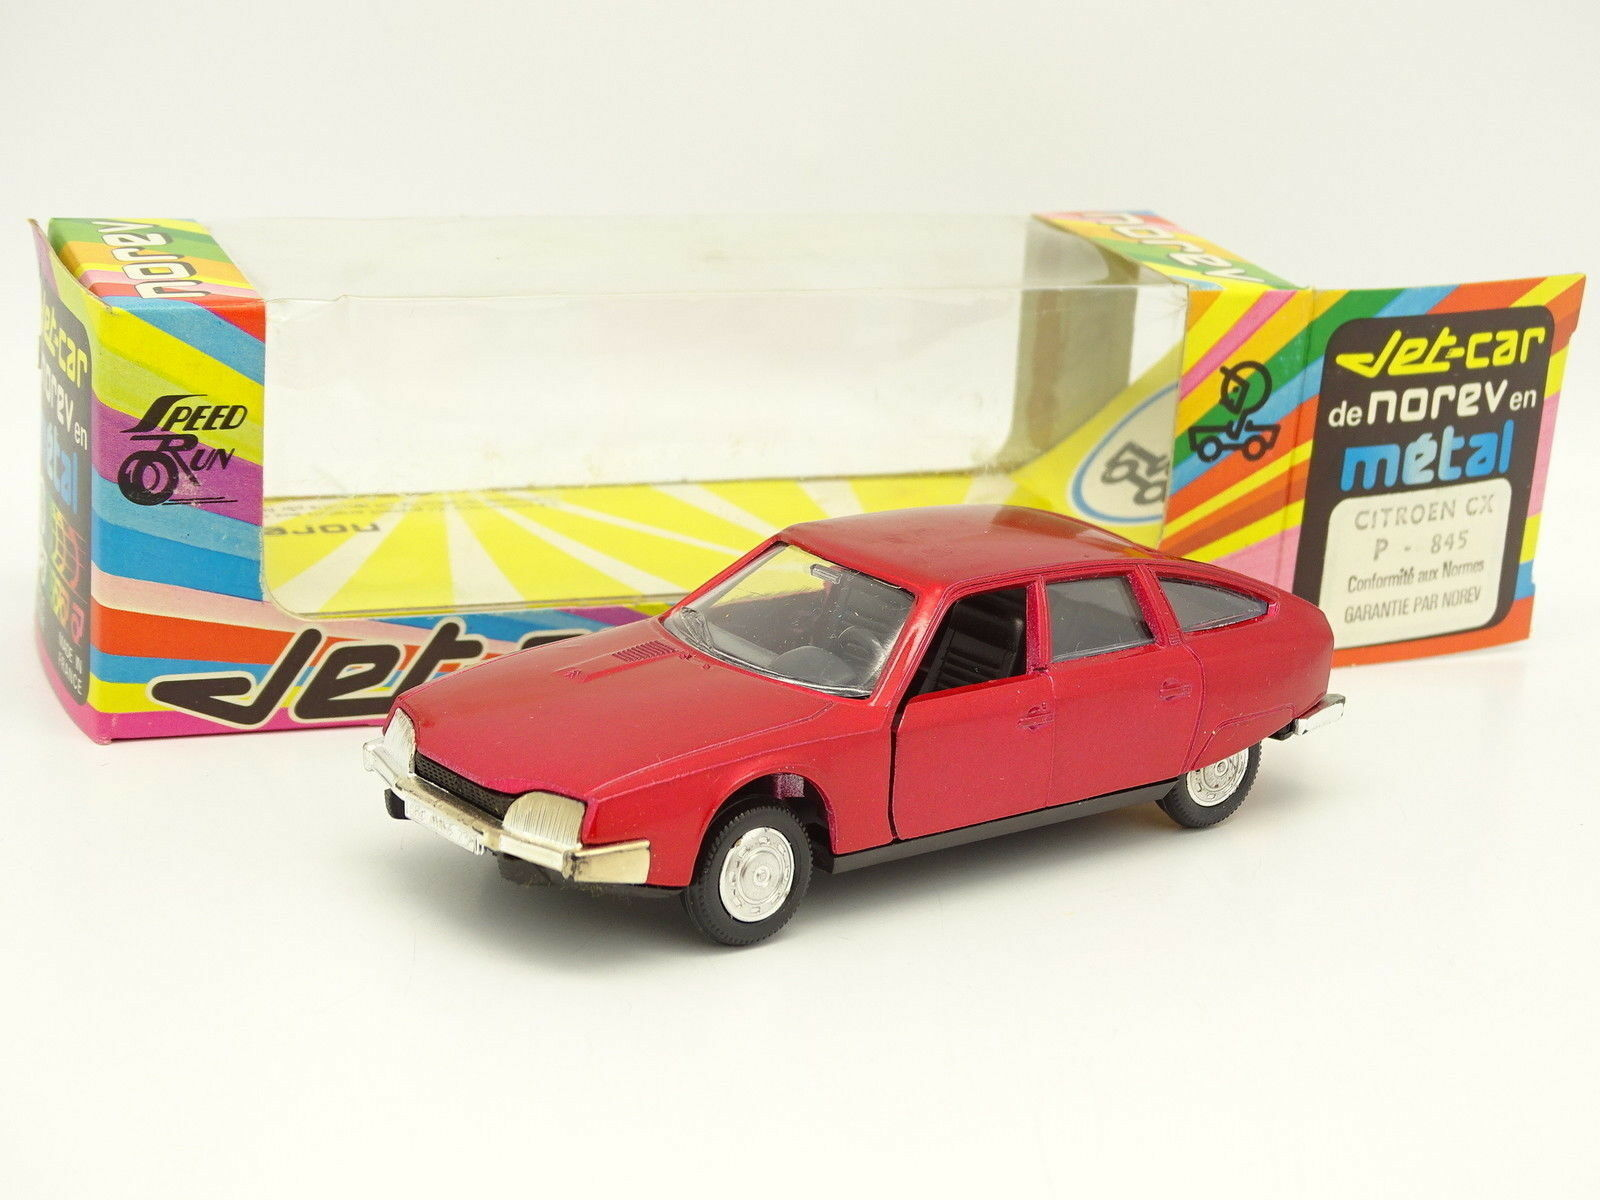 Norev Jet Car 1 43 - Citroen Cx Rot Nr °845